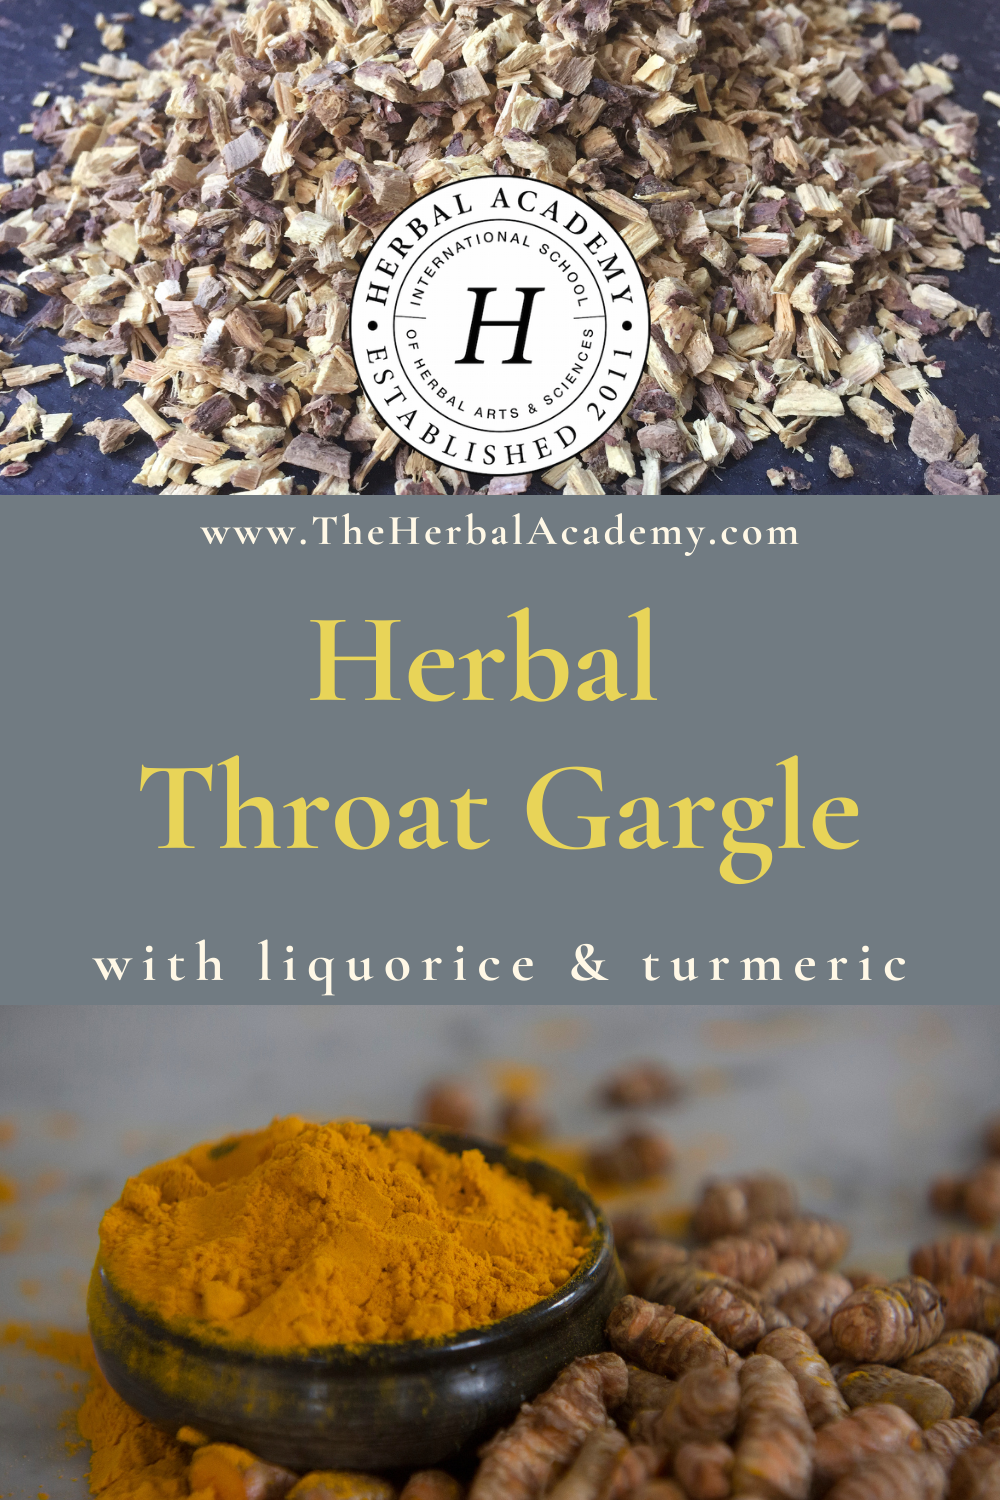 Herbal Throat Gargle | Herbal Academy | Pintrest graphic